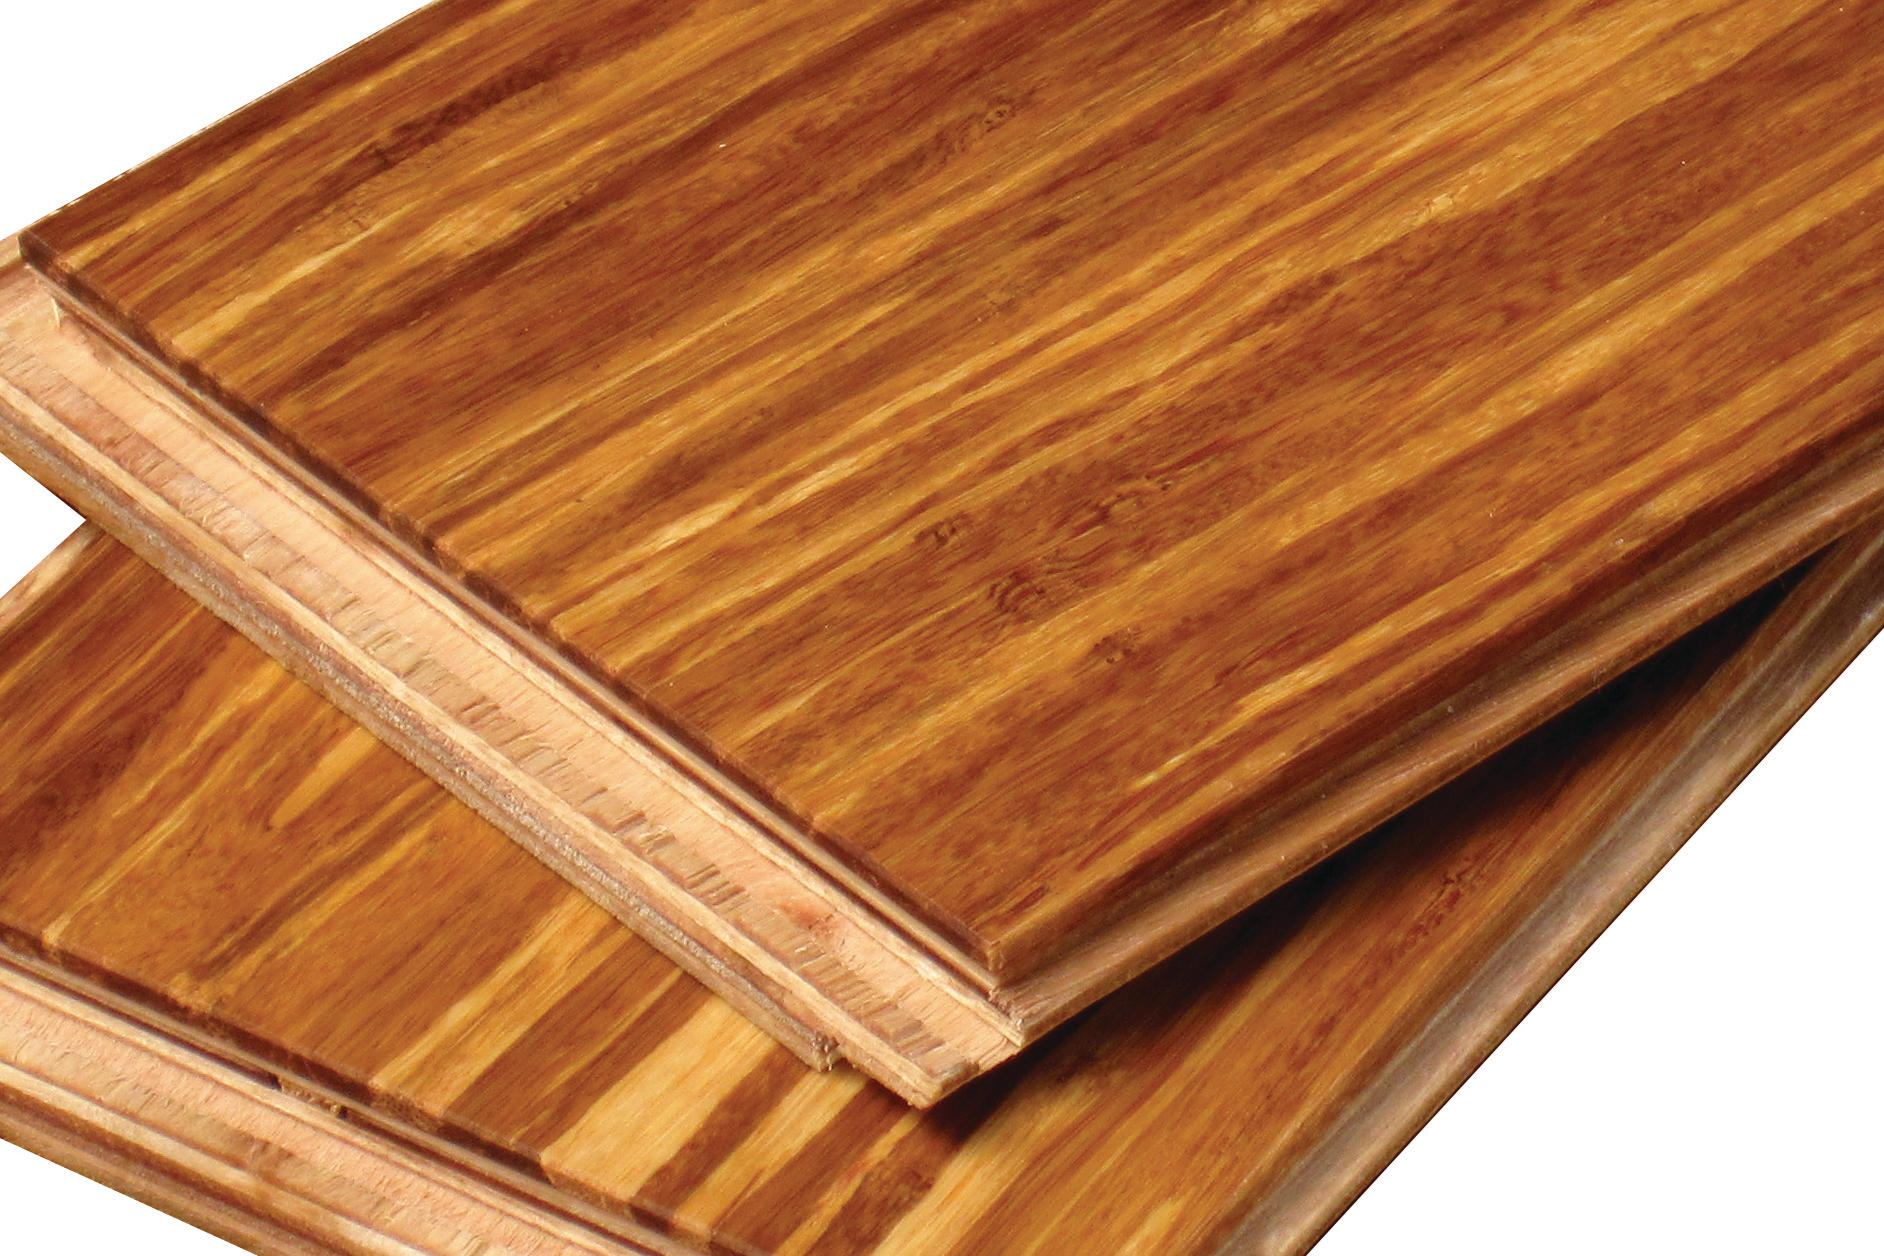 cali bamboo caliclick bamboo flooring builder magazine products finishes and surfaces flooring engineering cali bamboo - Bamboo Flooring Reviews